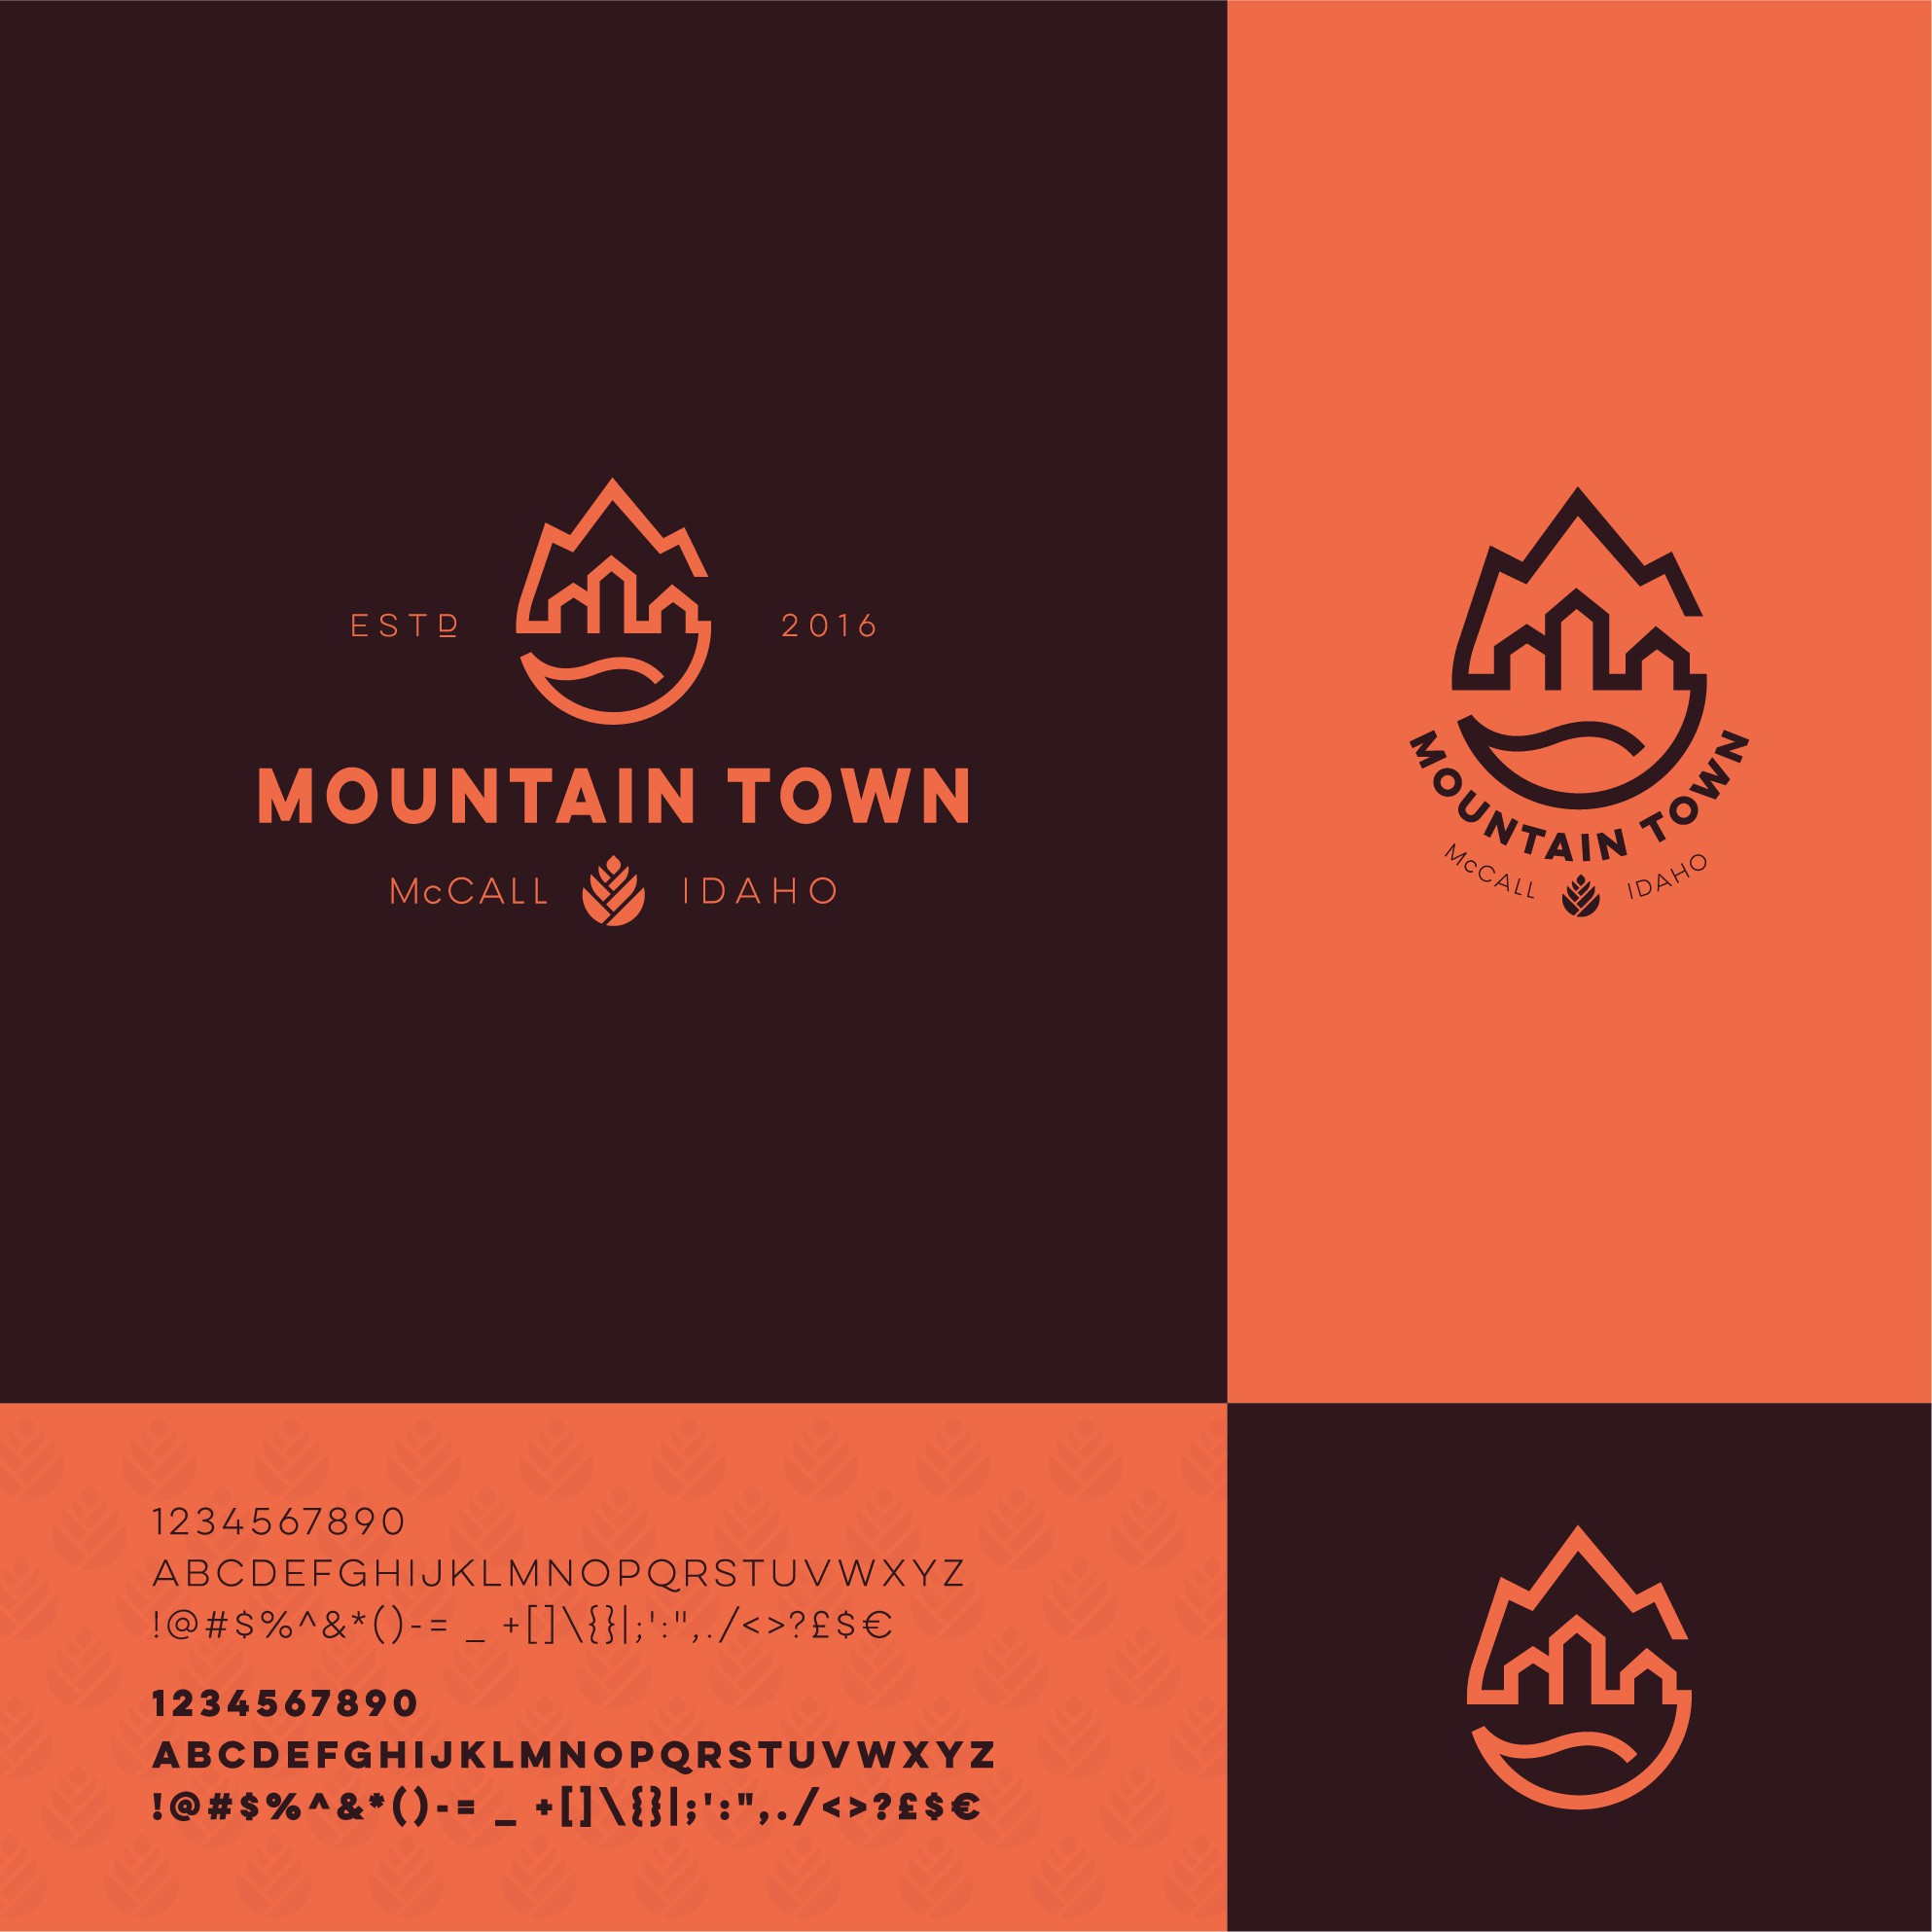 A unique and creative approach to logo design.